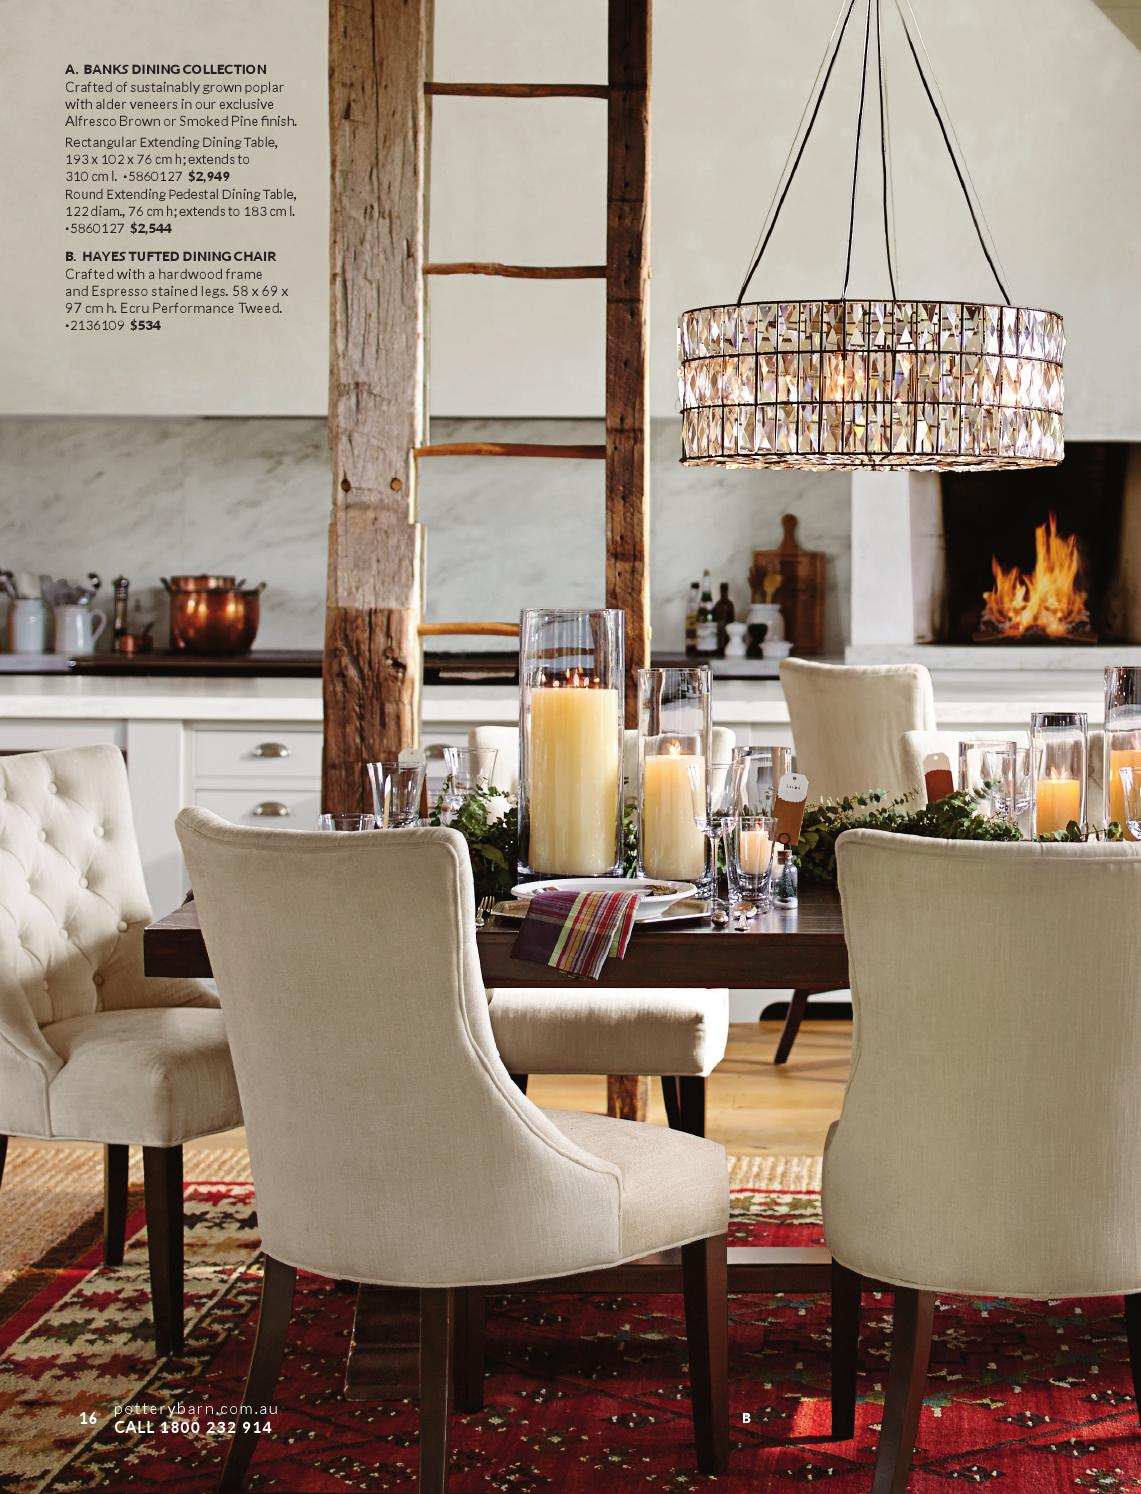 Pottery Barn Australia   Christmas Catalogue 2015 Intended For Most Up To Date Alfresco Brown Banks Extending Dining Tables (View 6 of 25)